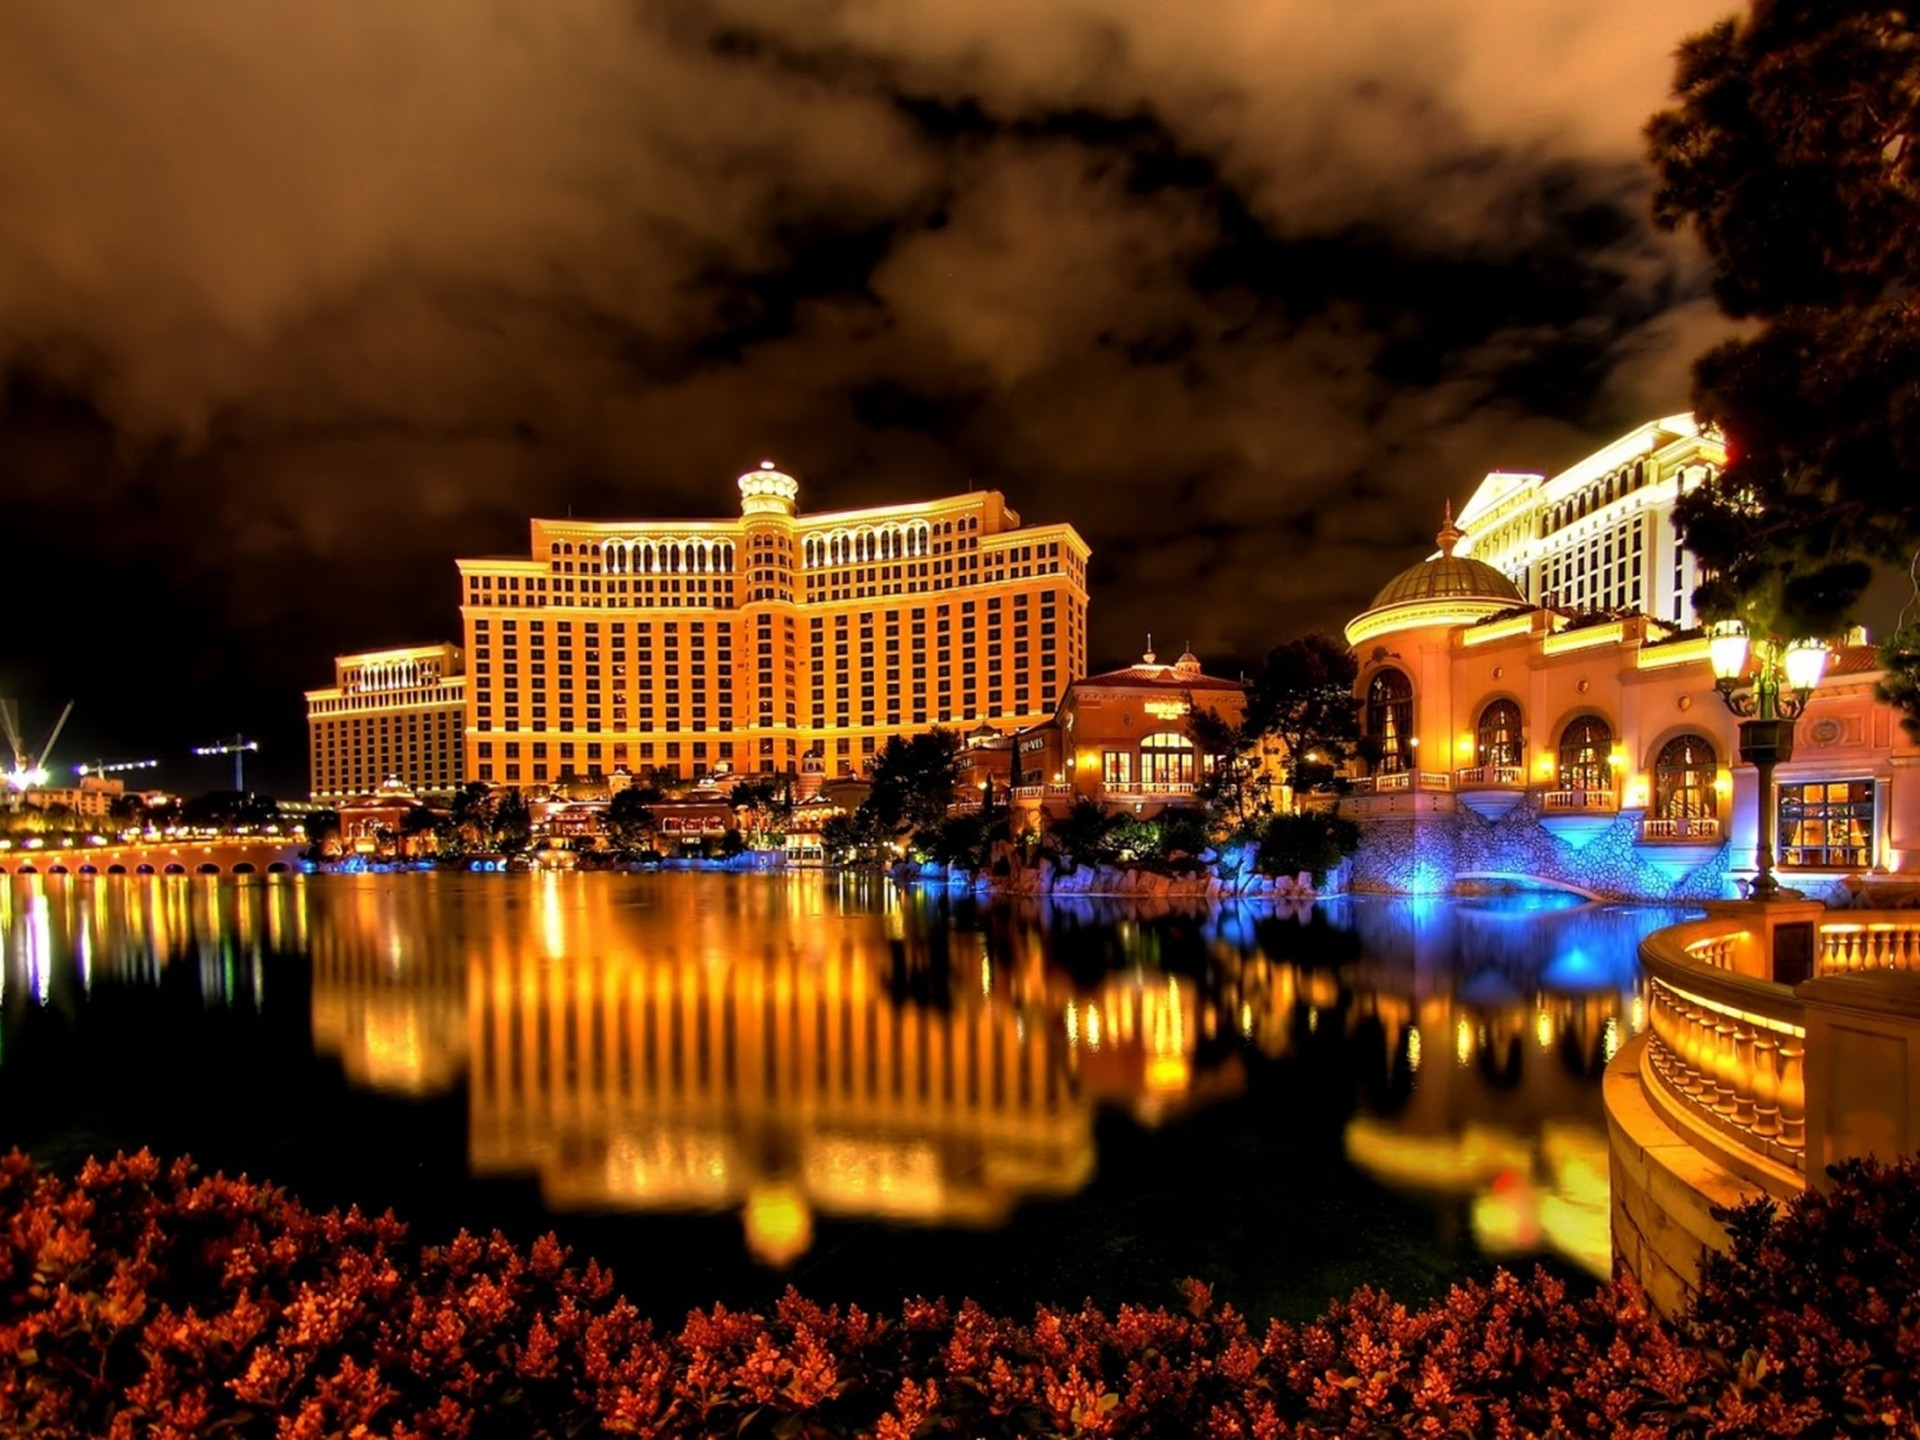 Greatest Poker Skins - Best Backgrounds And Online Poker Themes